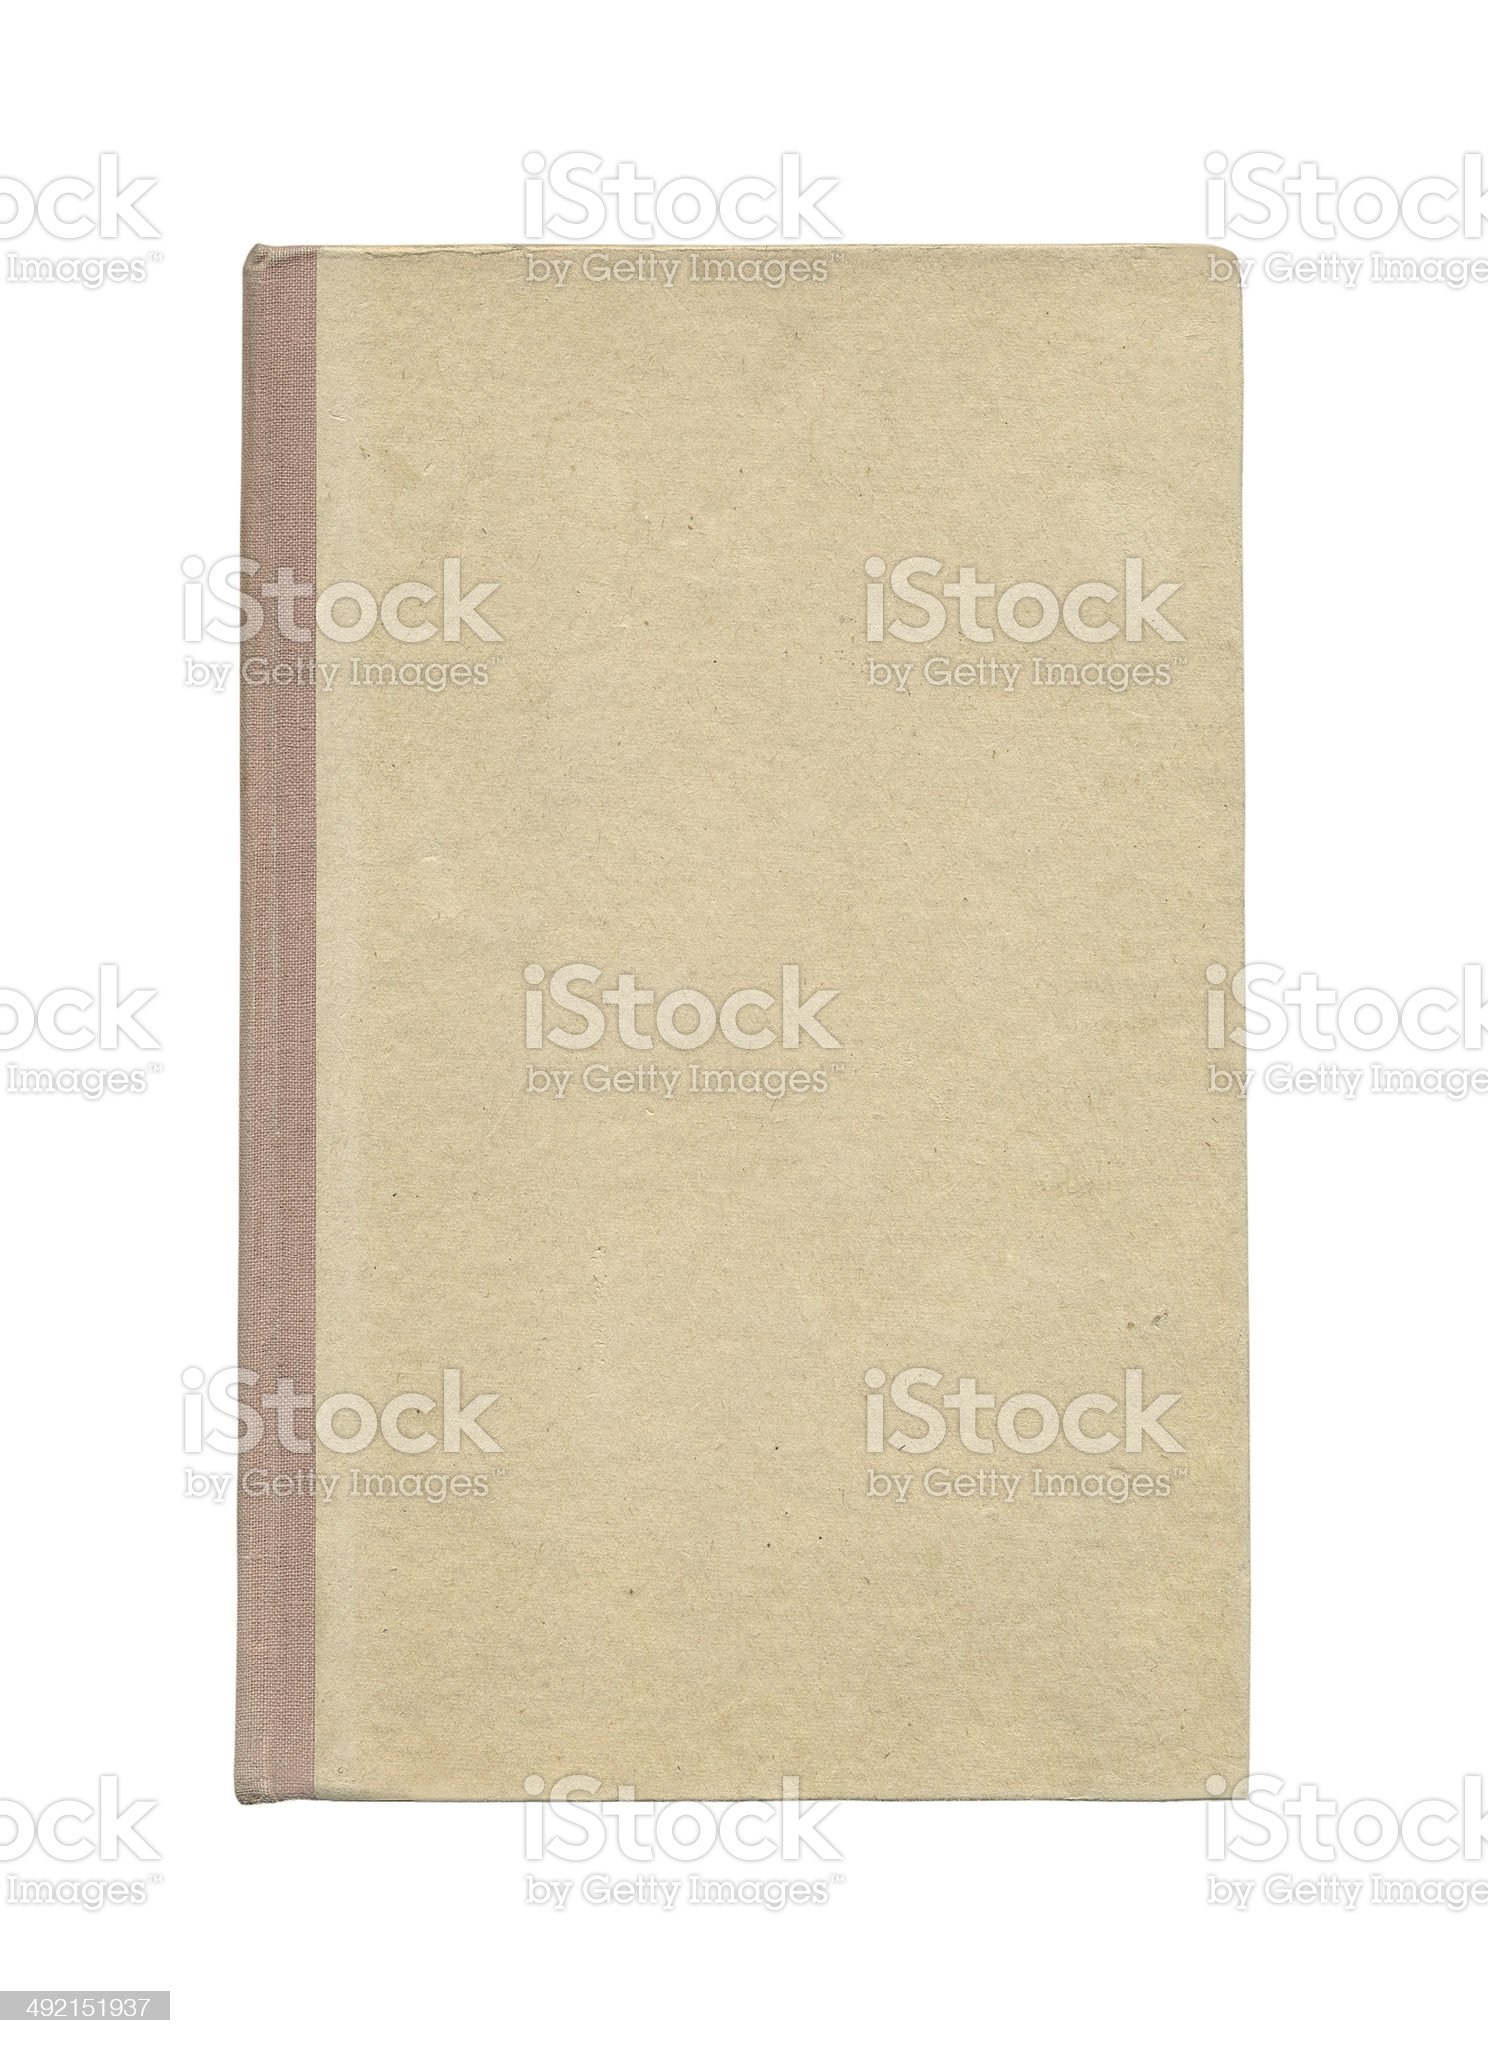 Cover of book royalty-free stock photo